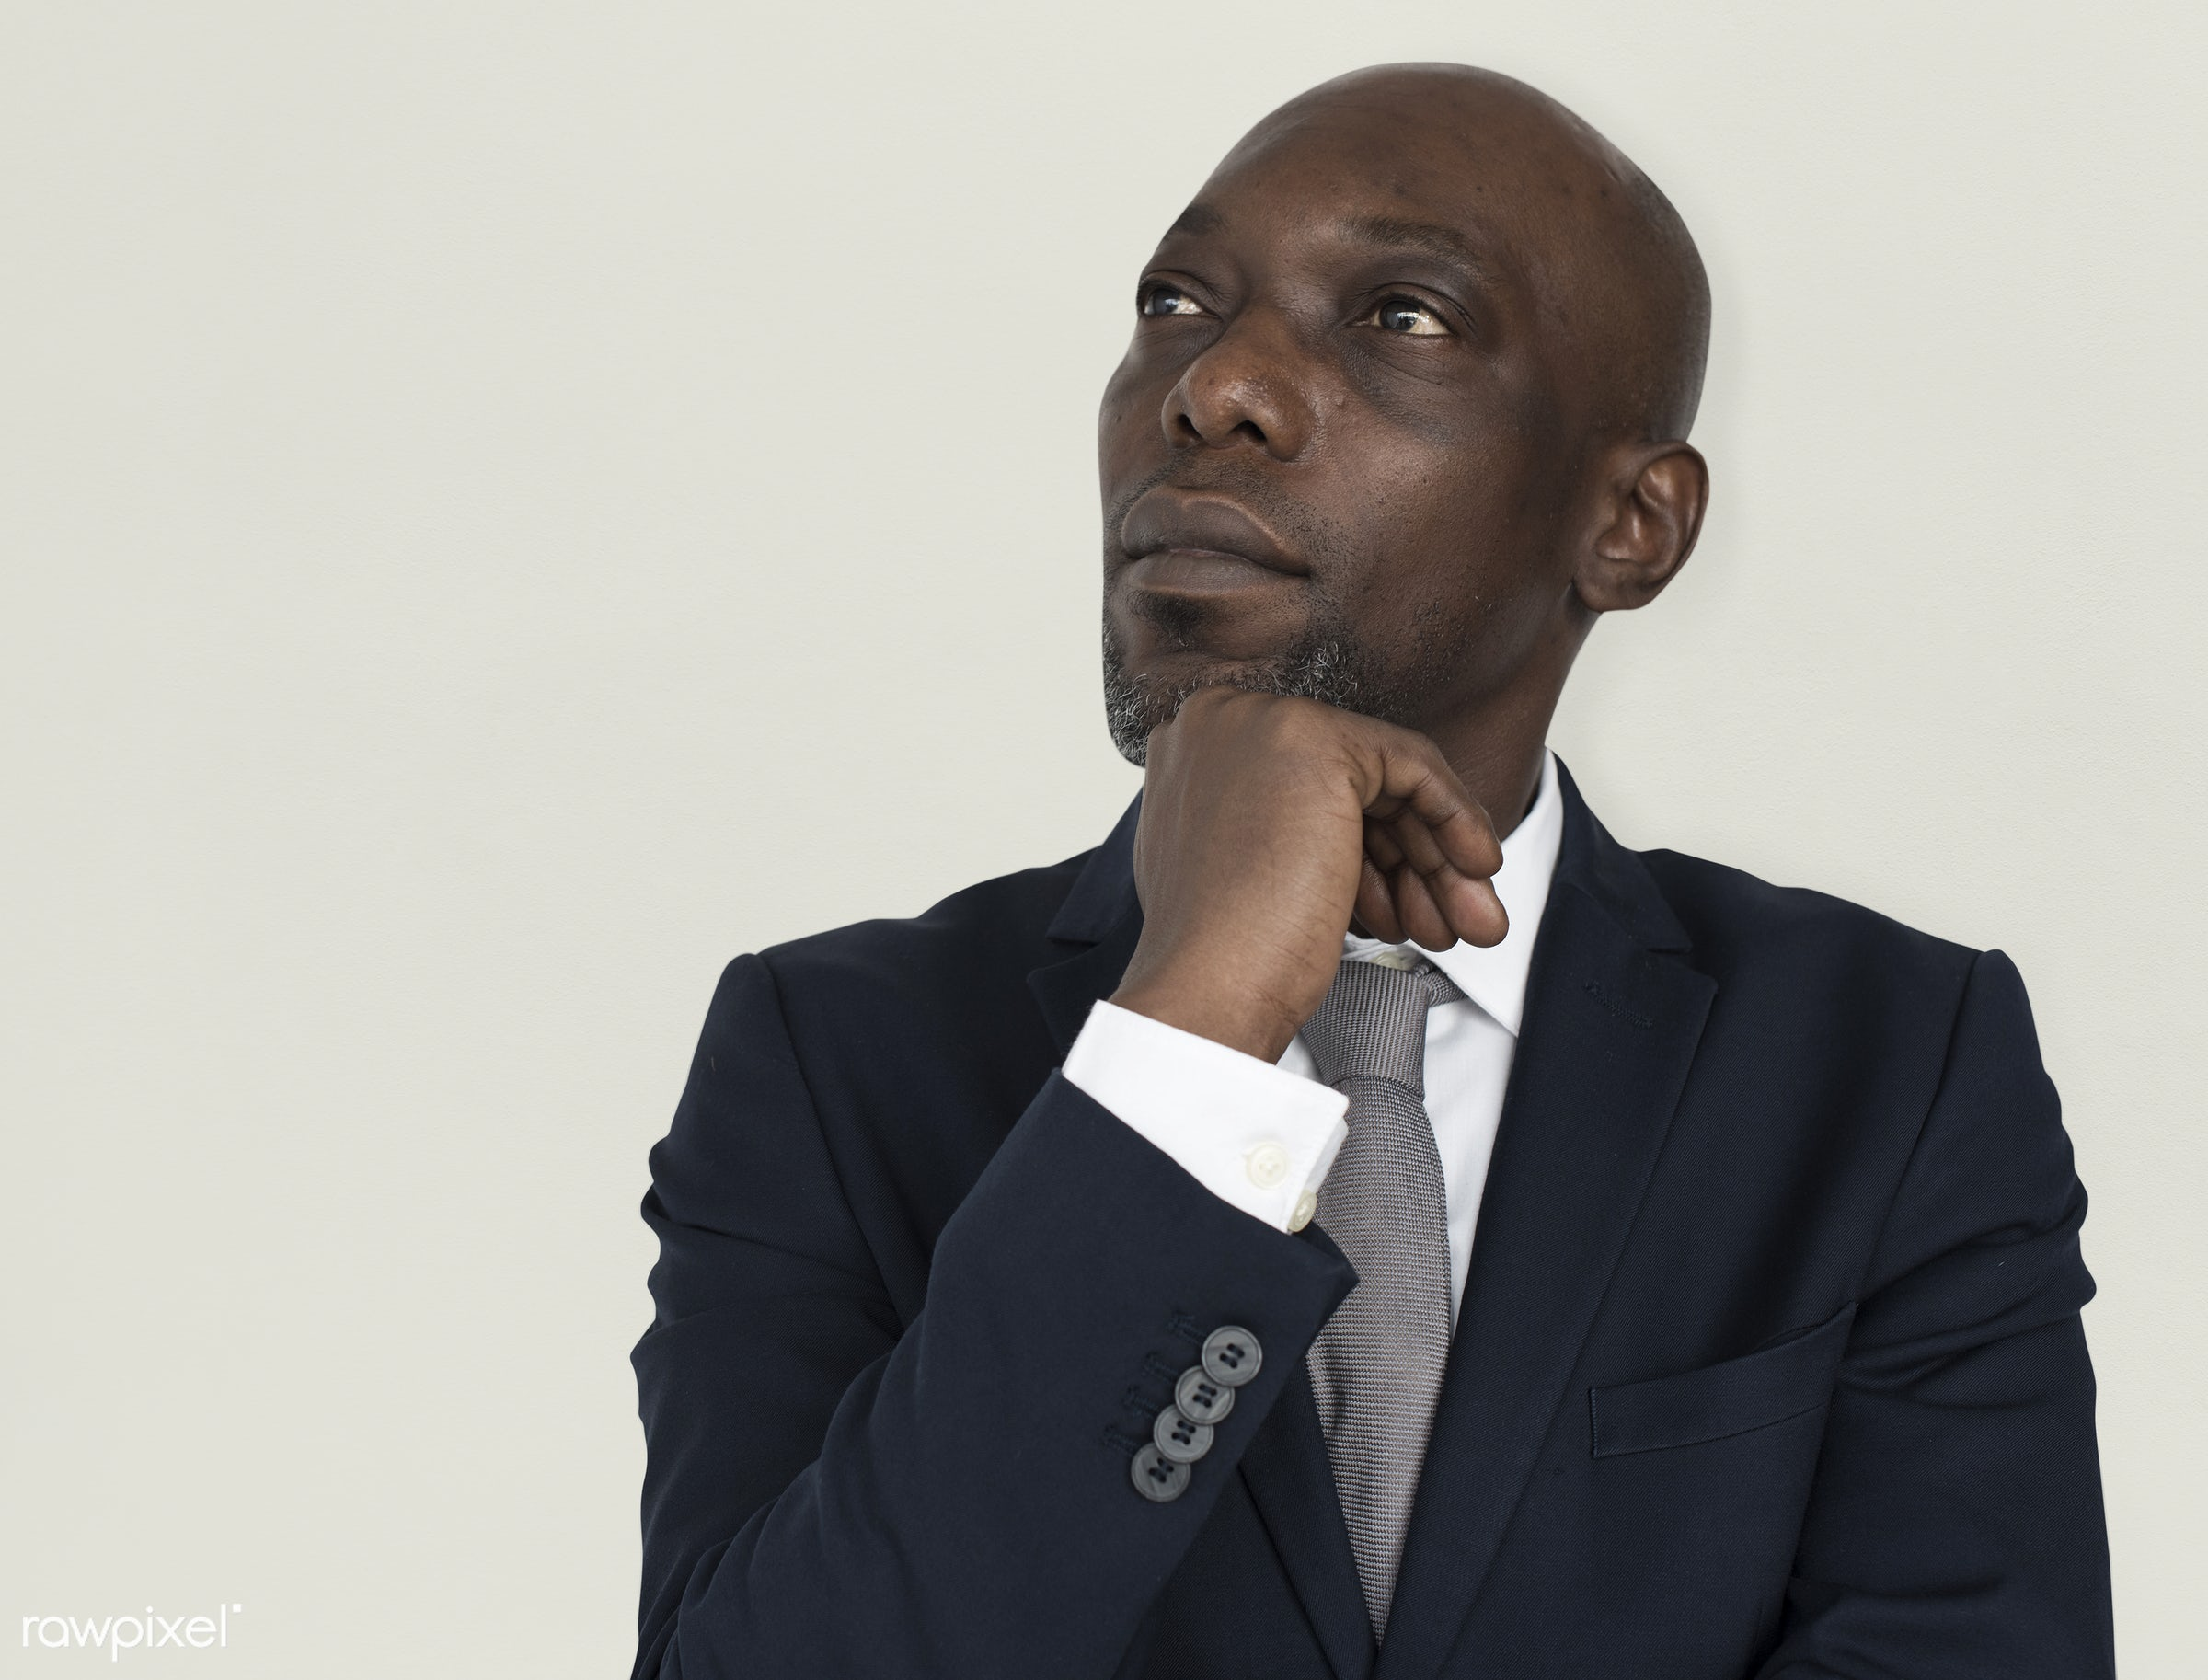 blakc, african, african american, tie, think, black, male, man, thinking, professional, business, bussinessman